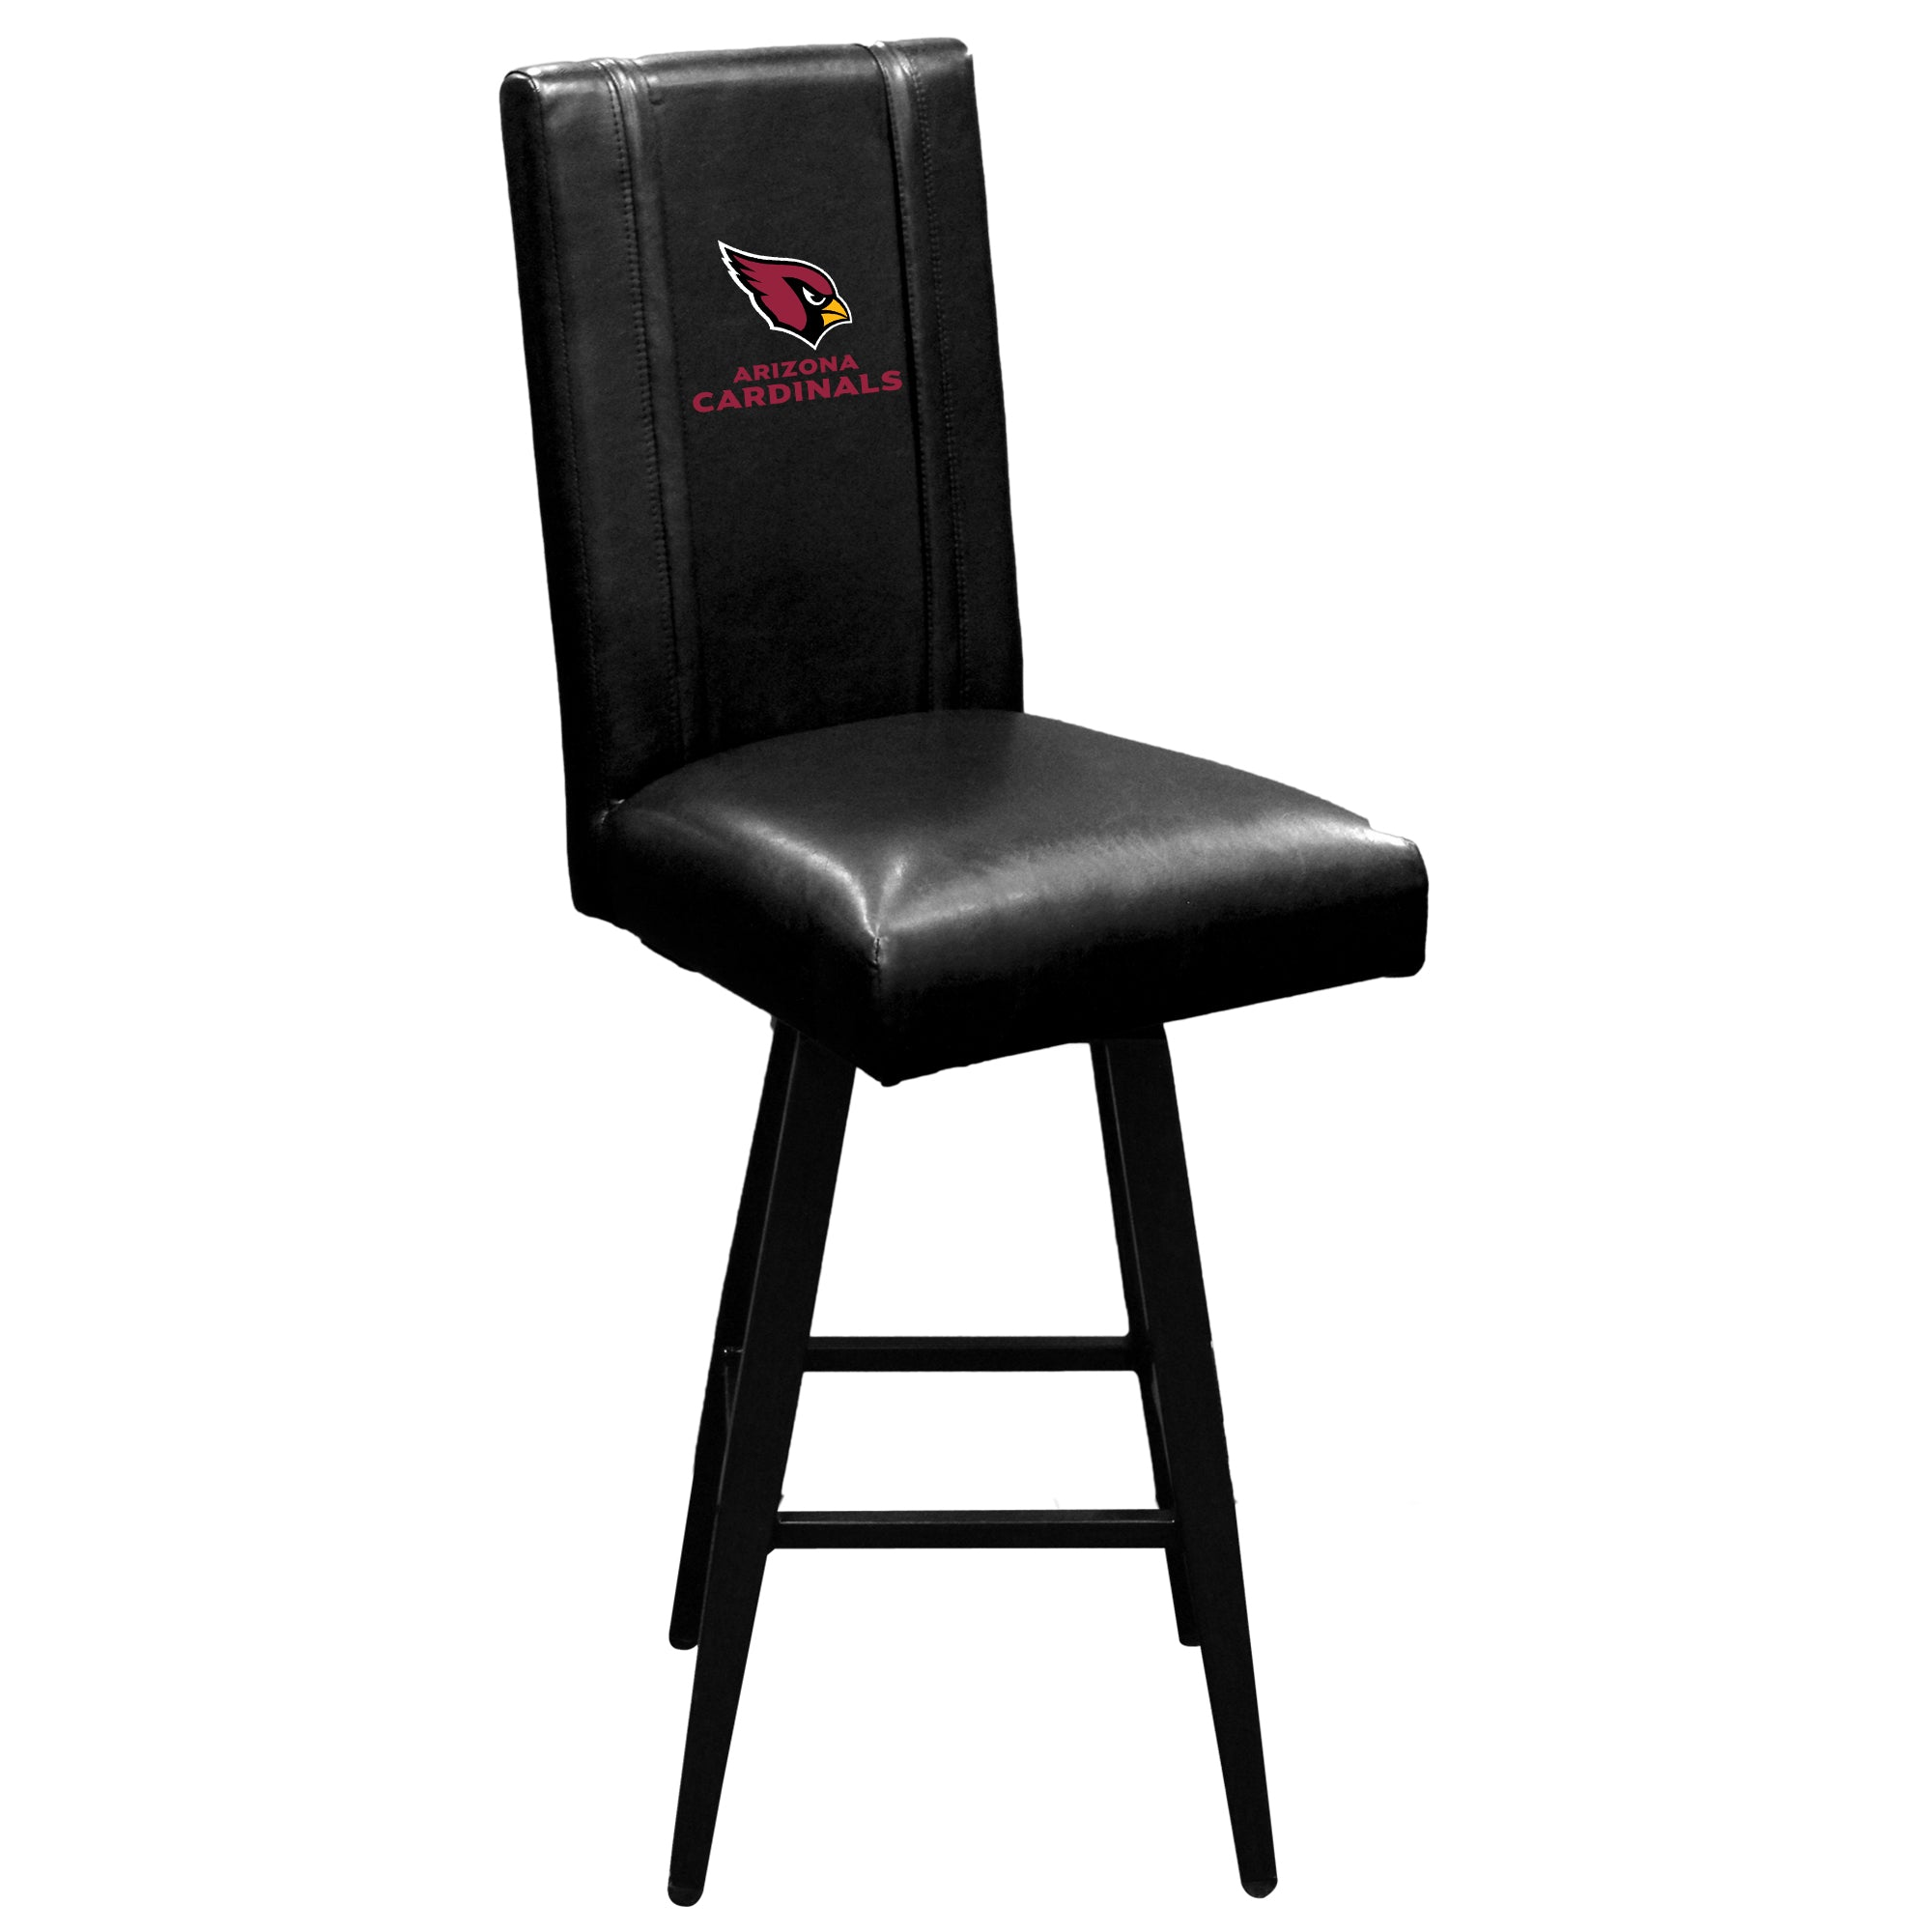 Swivel Bar Stool 2000 with Arizona Cardinals Secondary Logo